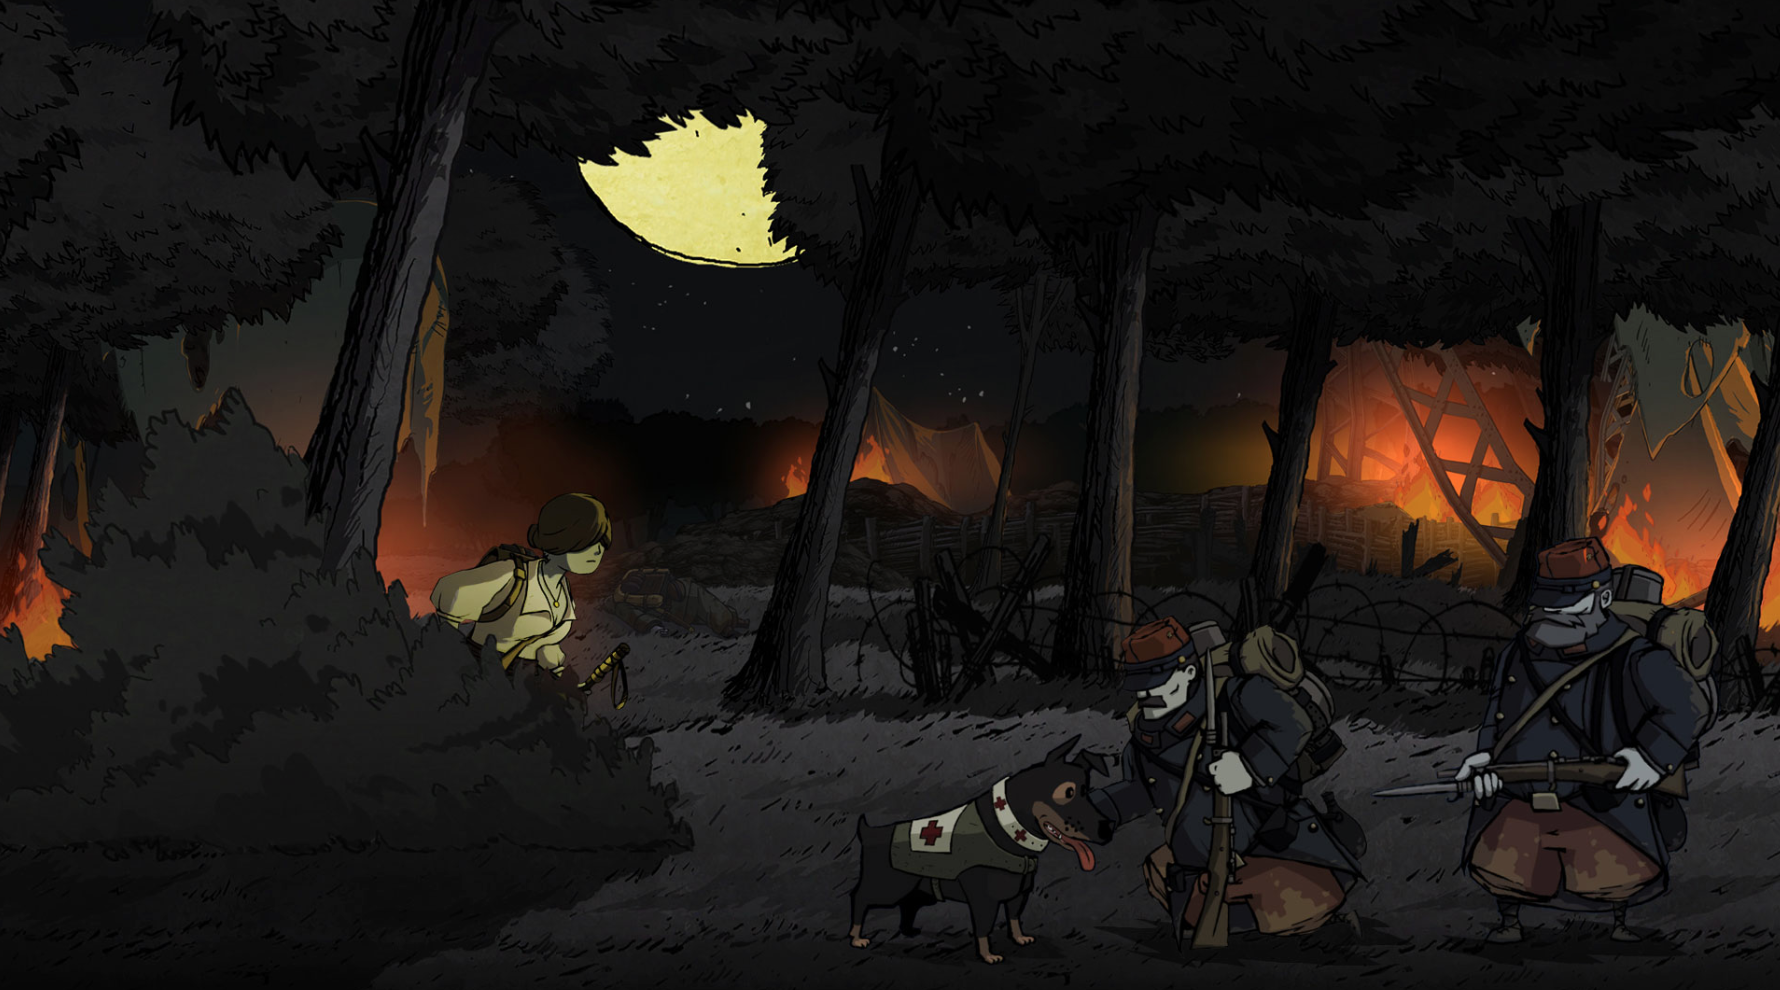 You can pet the dog in Valiant Hearts